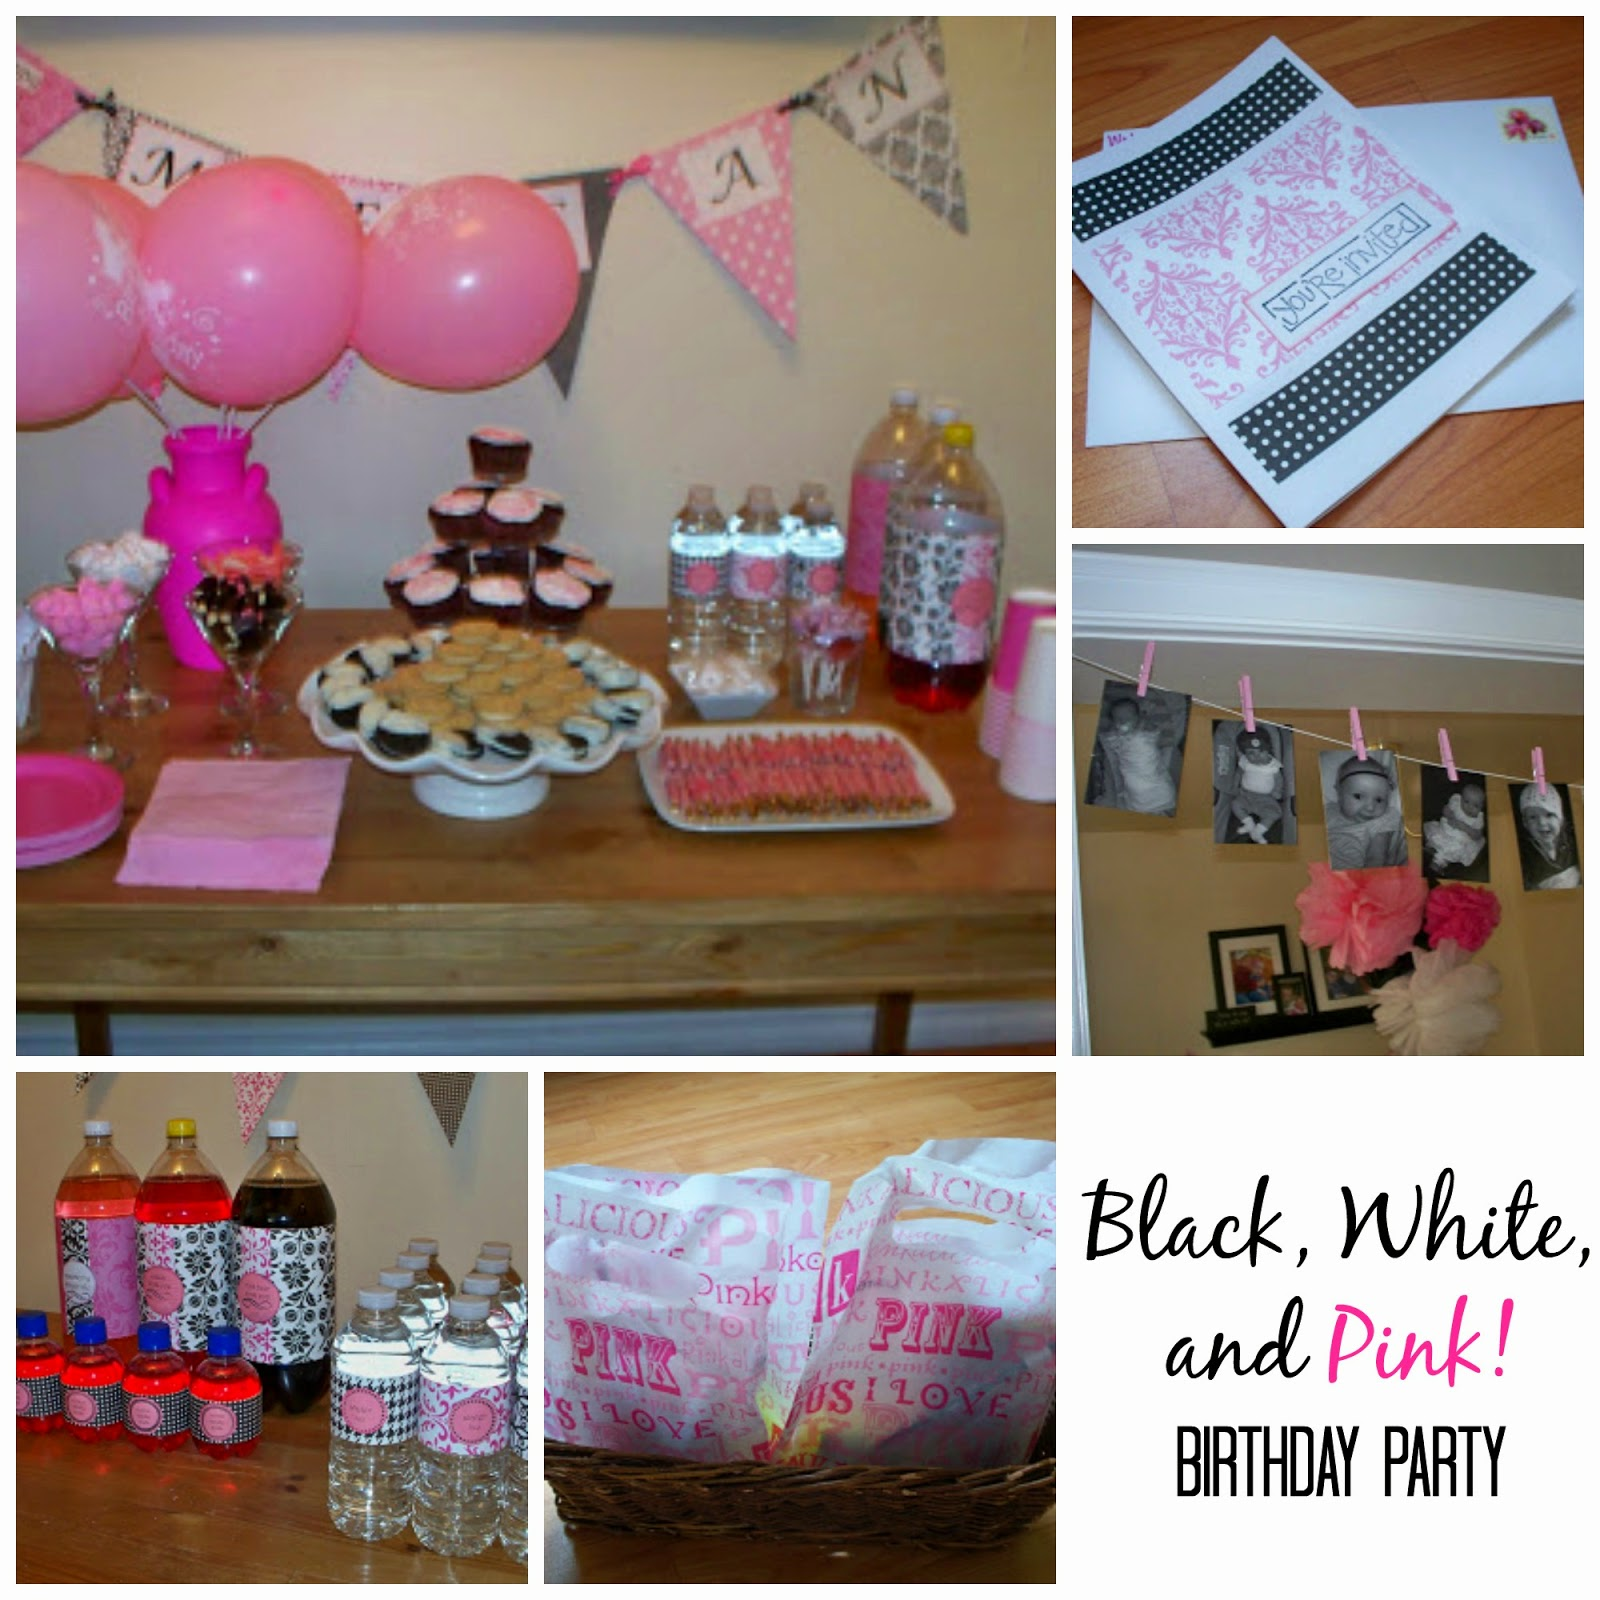 http://craftingandcreativity.blogspot.ca/2011/05/girls-1st-birthday-party-black-white.html